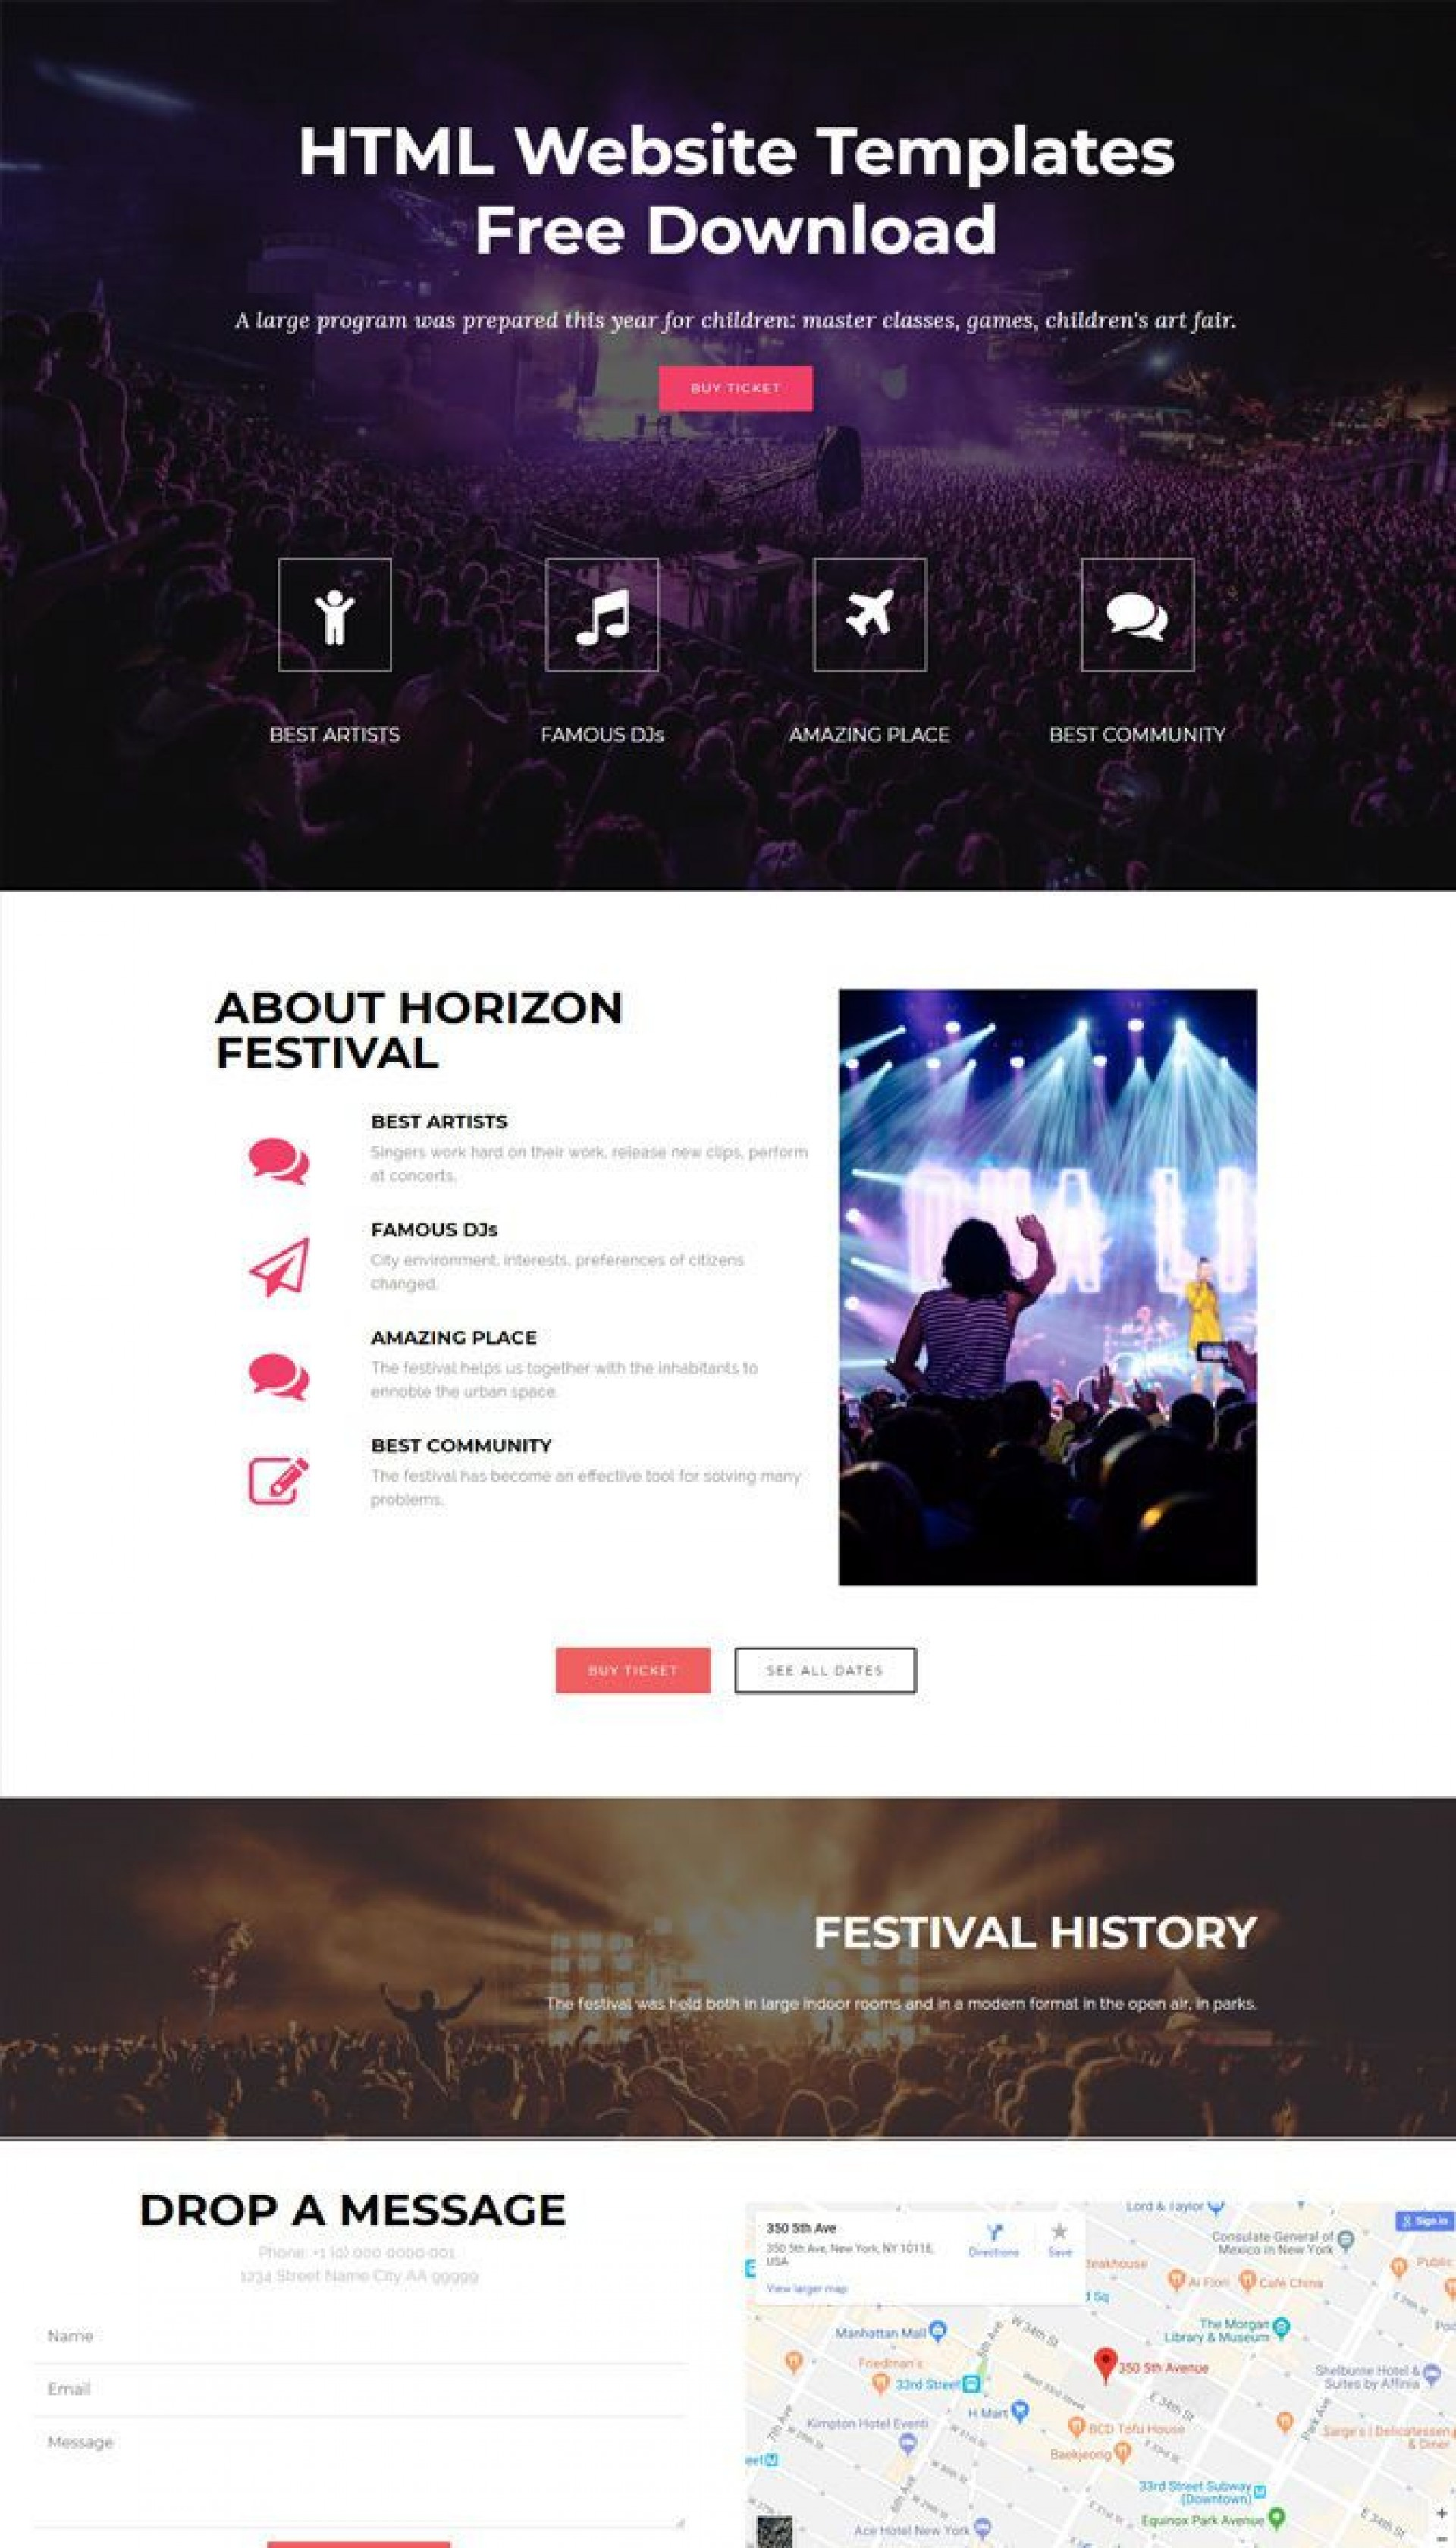 008 Imposing Website Template Html Free Download Highest Clarity  Indian School Software Company Spice1920